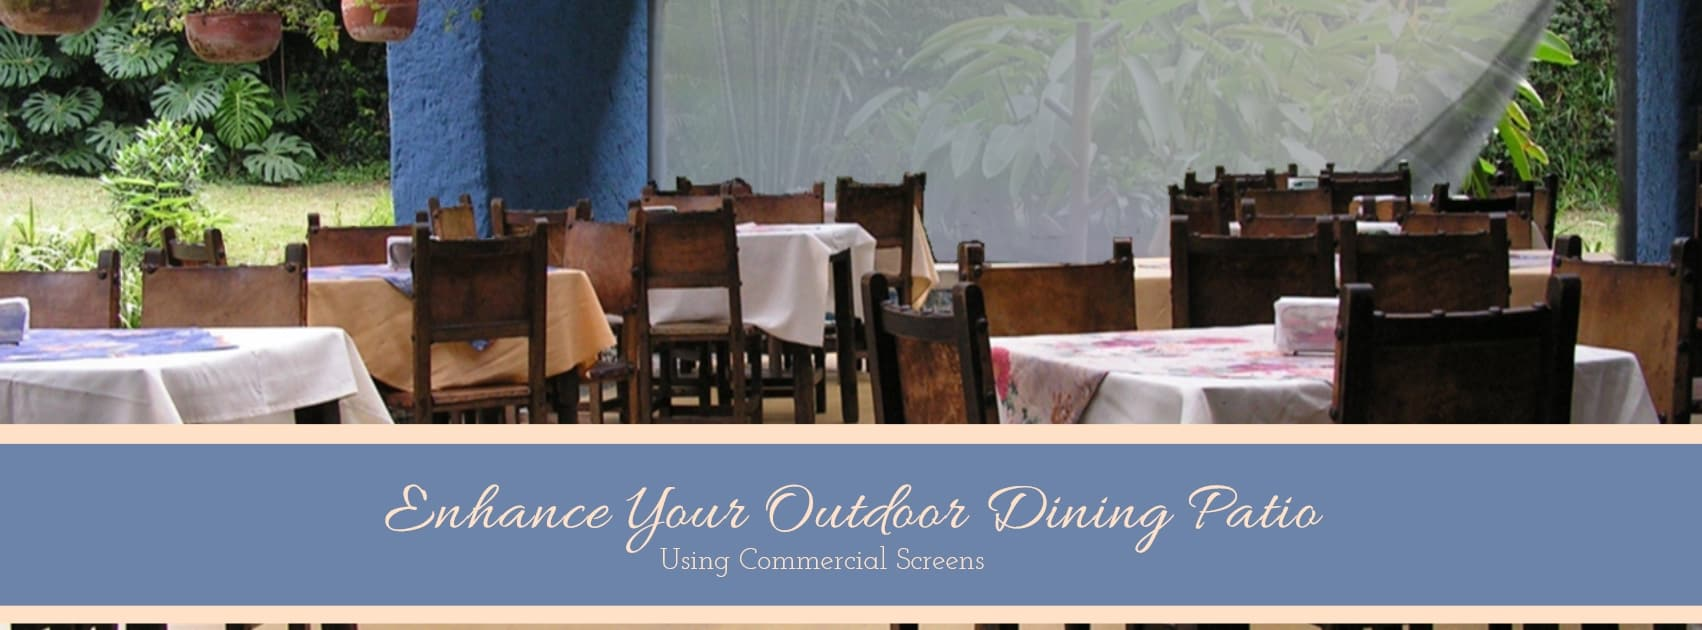 Dining Patio Banner